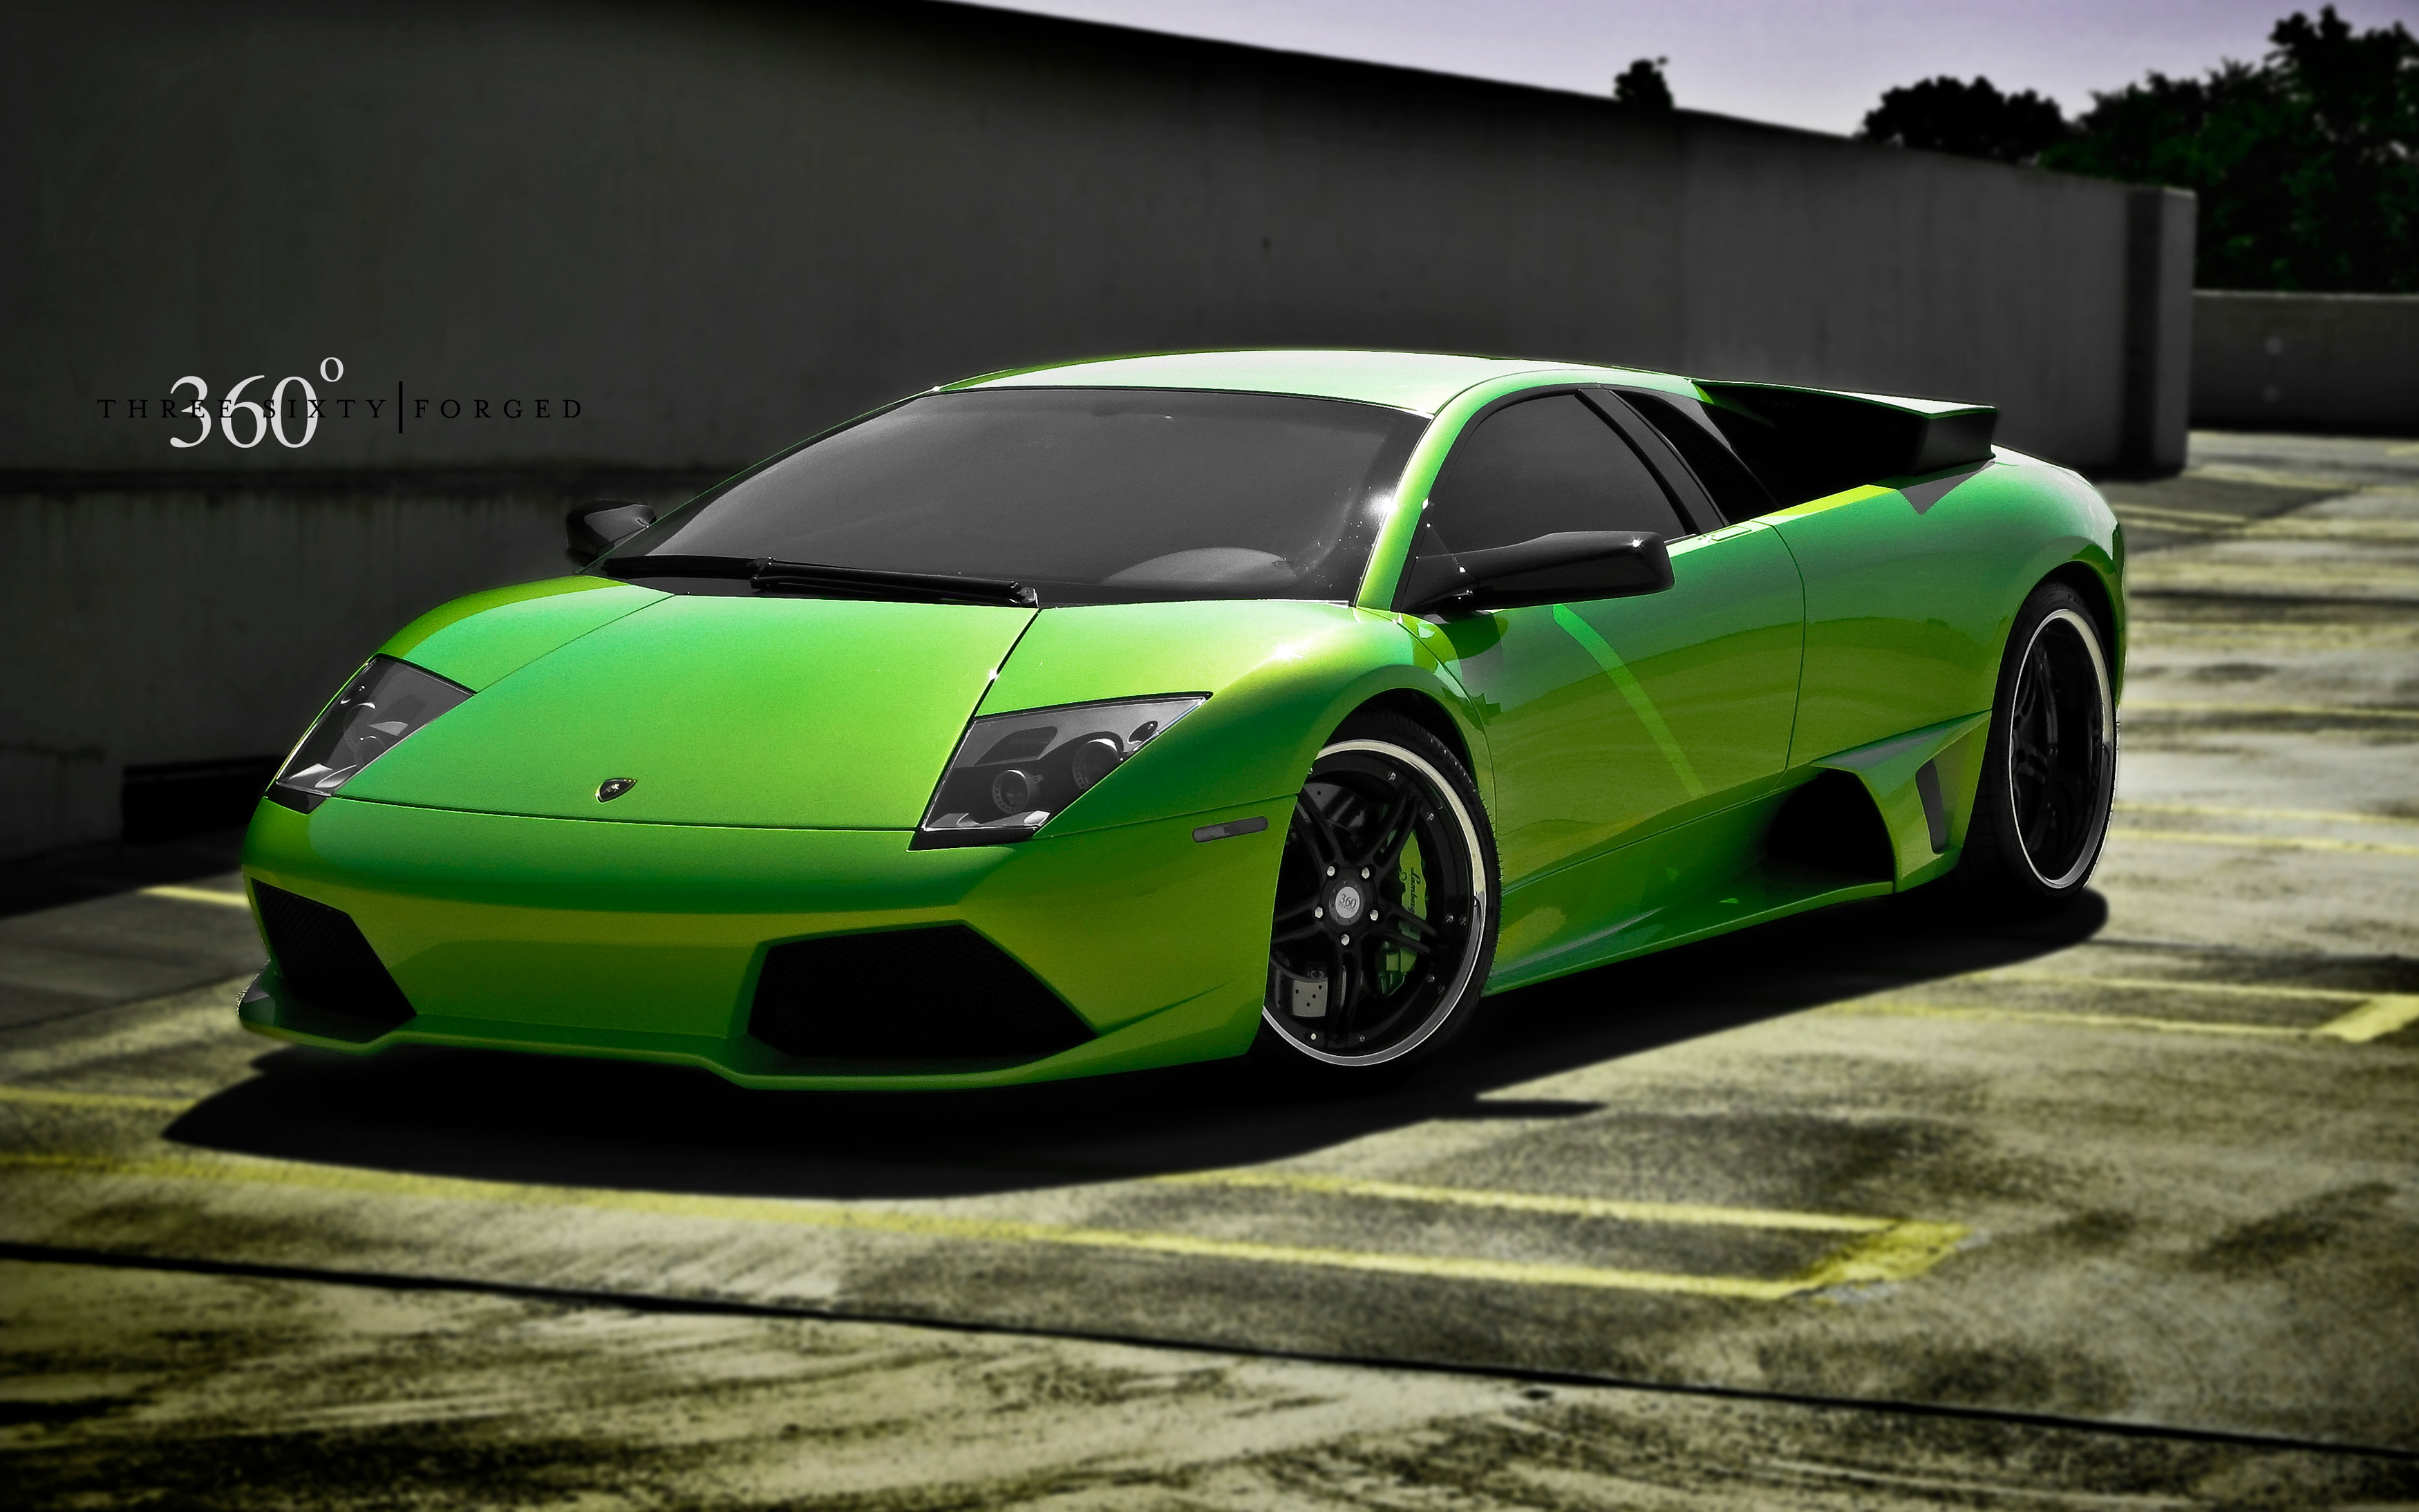 Lp640 On 360 Forged Cf 5ive Wallpaper Hd Car Wallpapers Id 2787